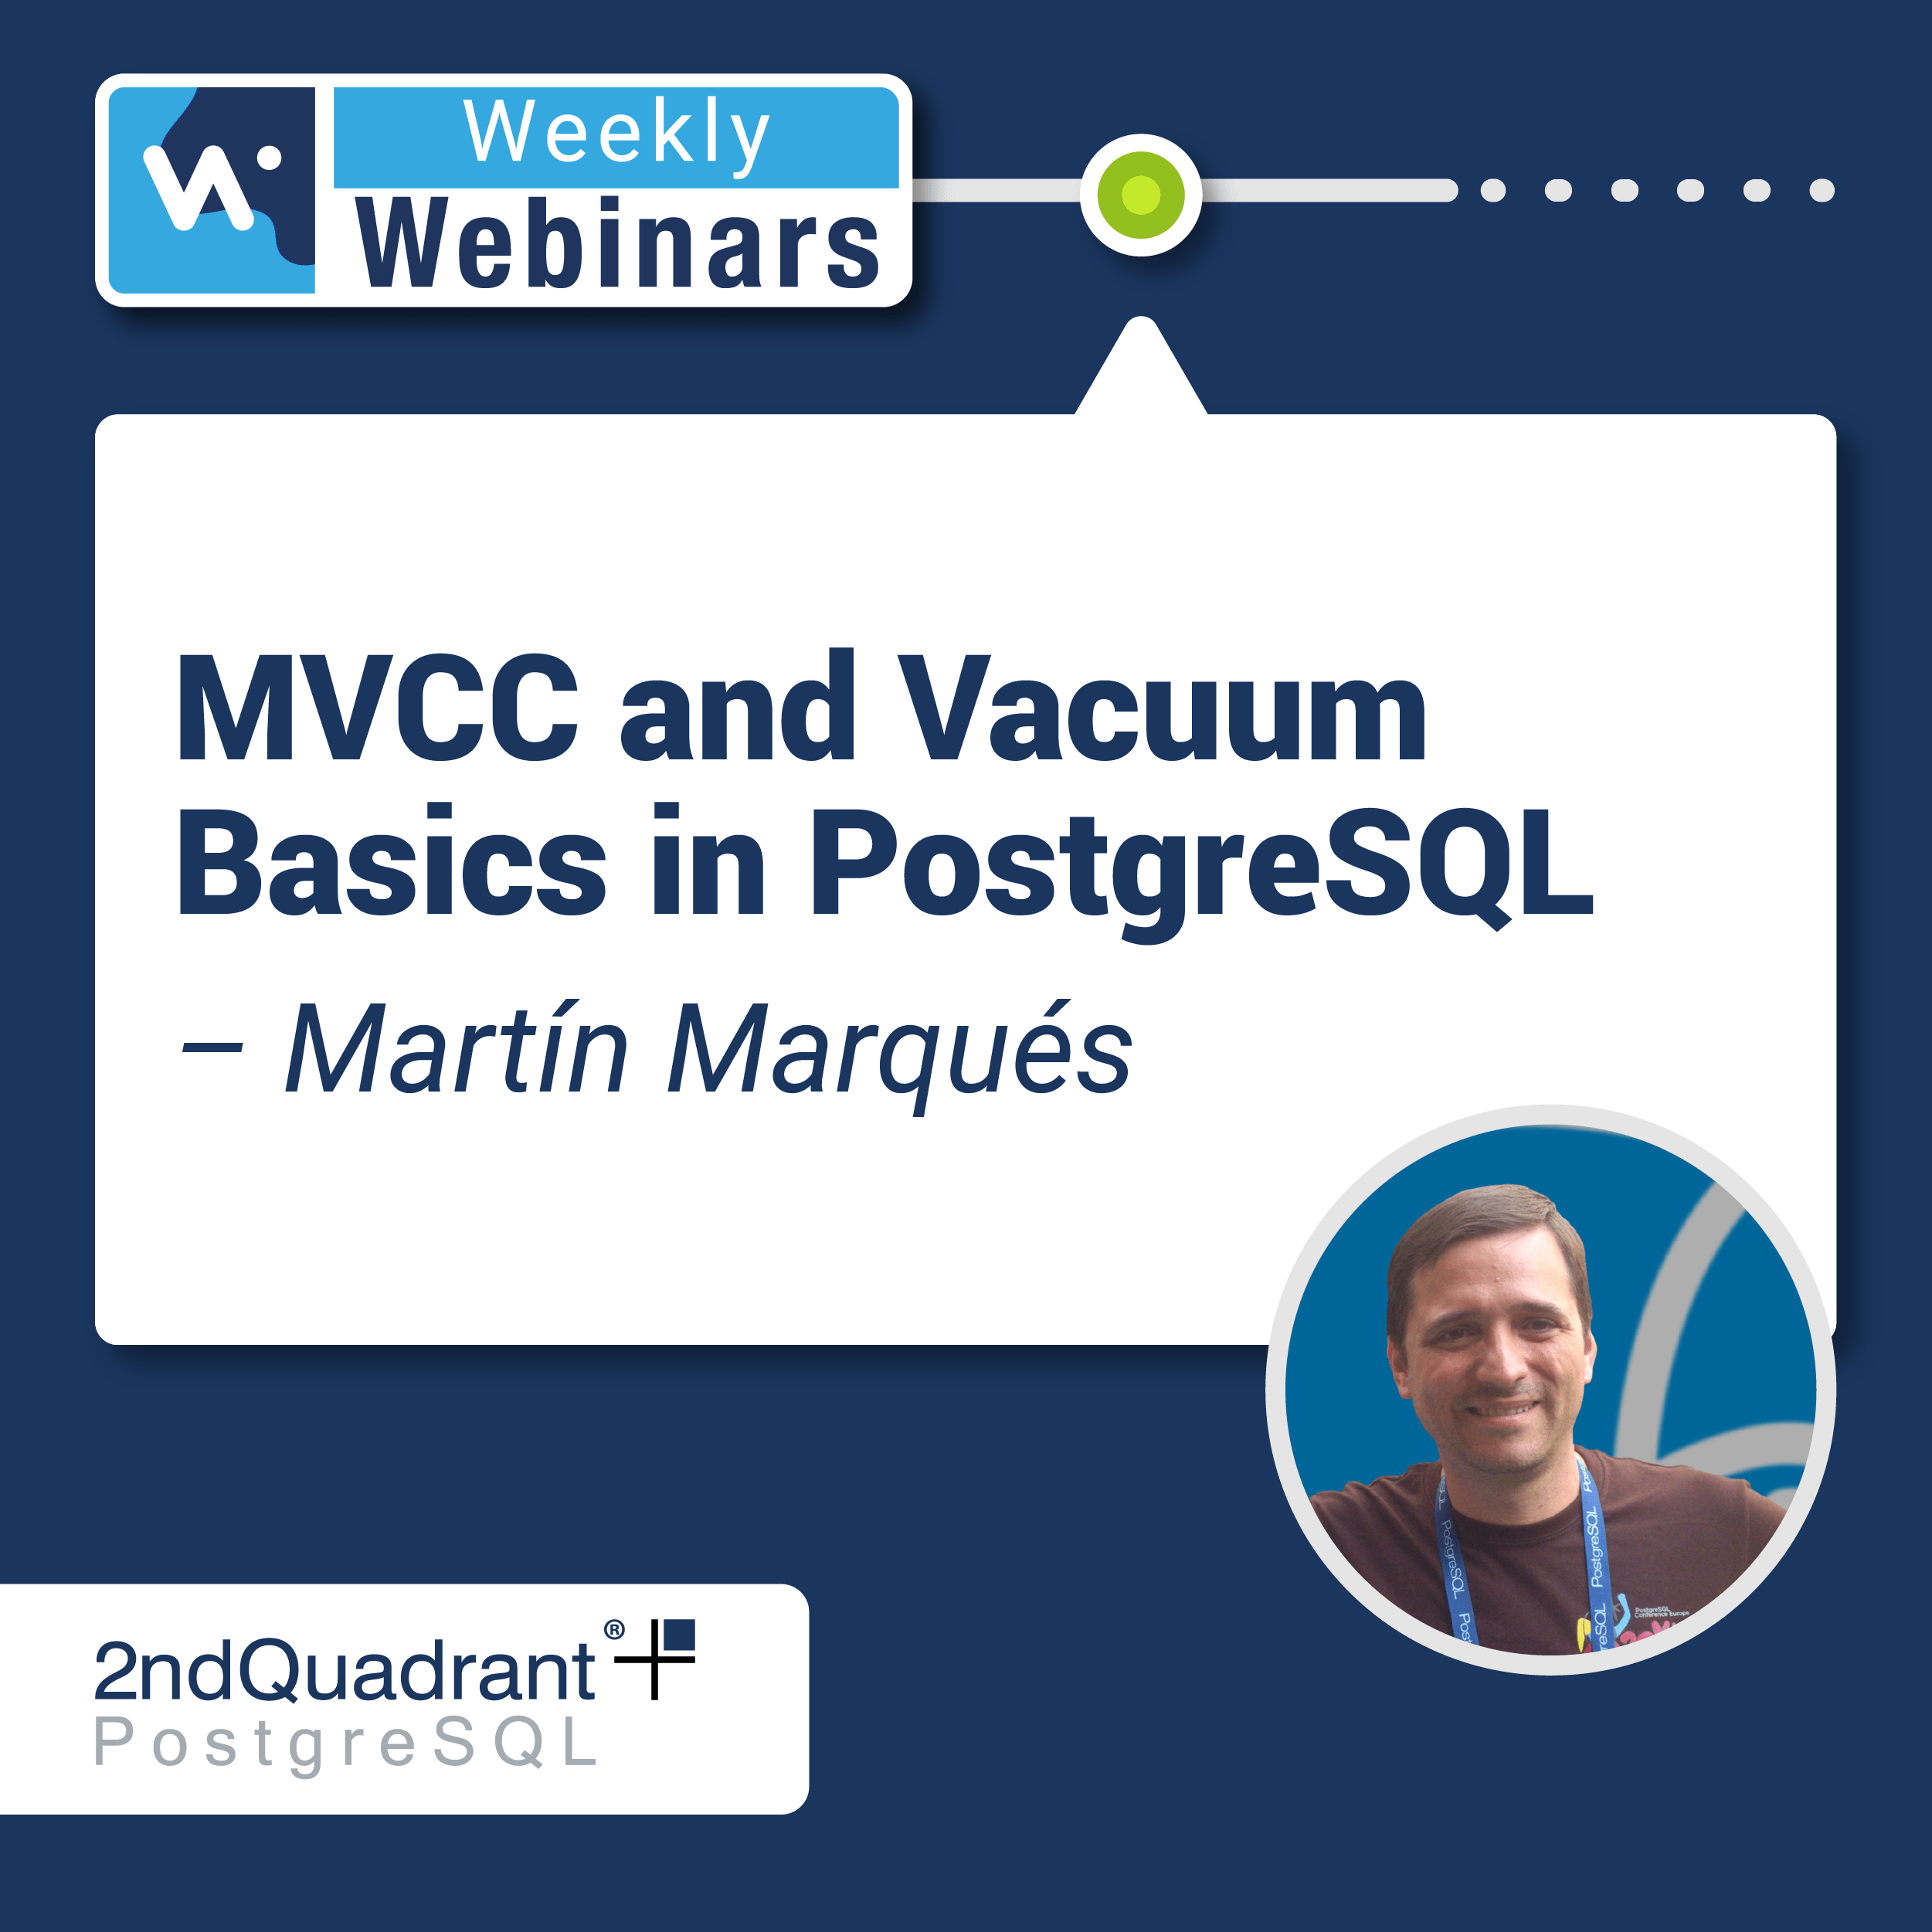 MVCC and Vacumm Basics in PostgreSQL